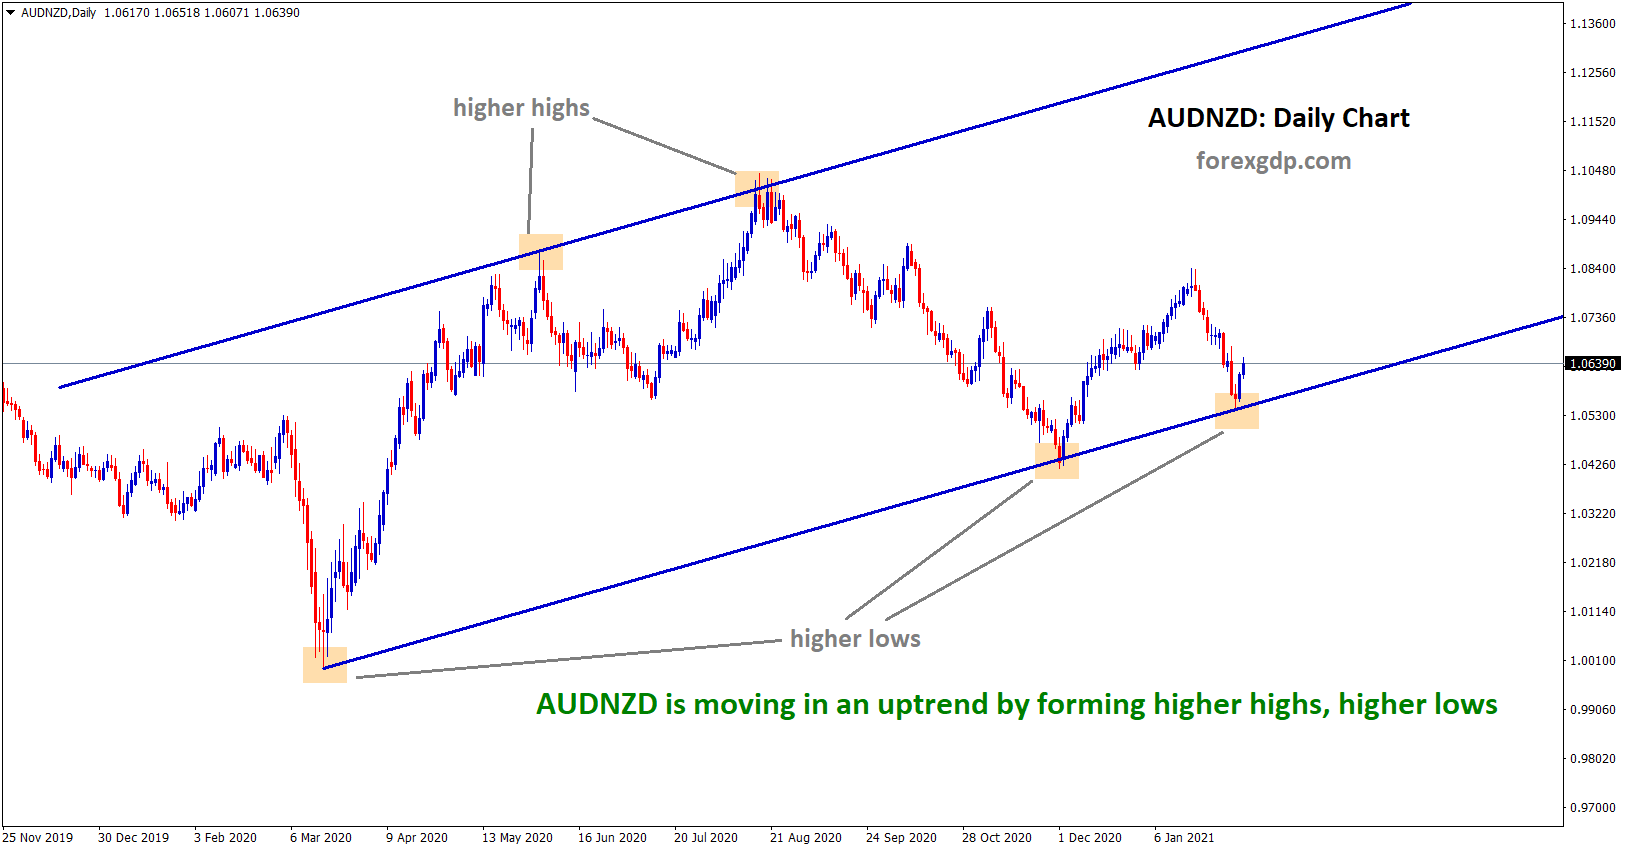 audnzd moving in an uptrend now in daily time frame chart